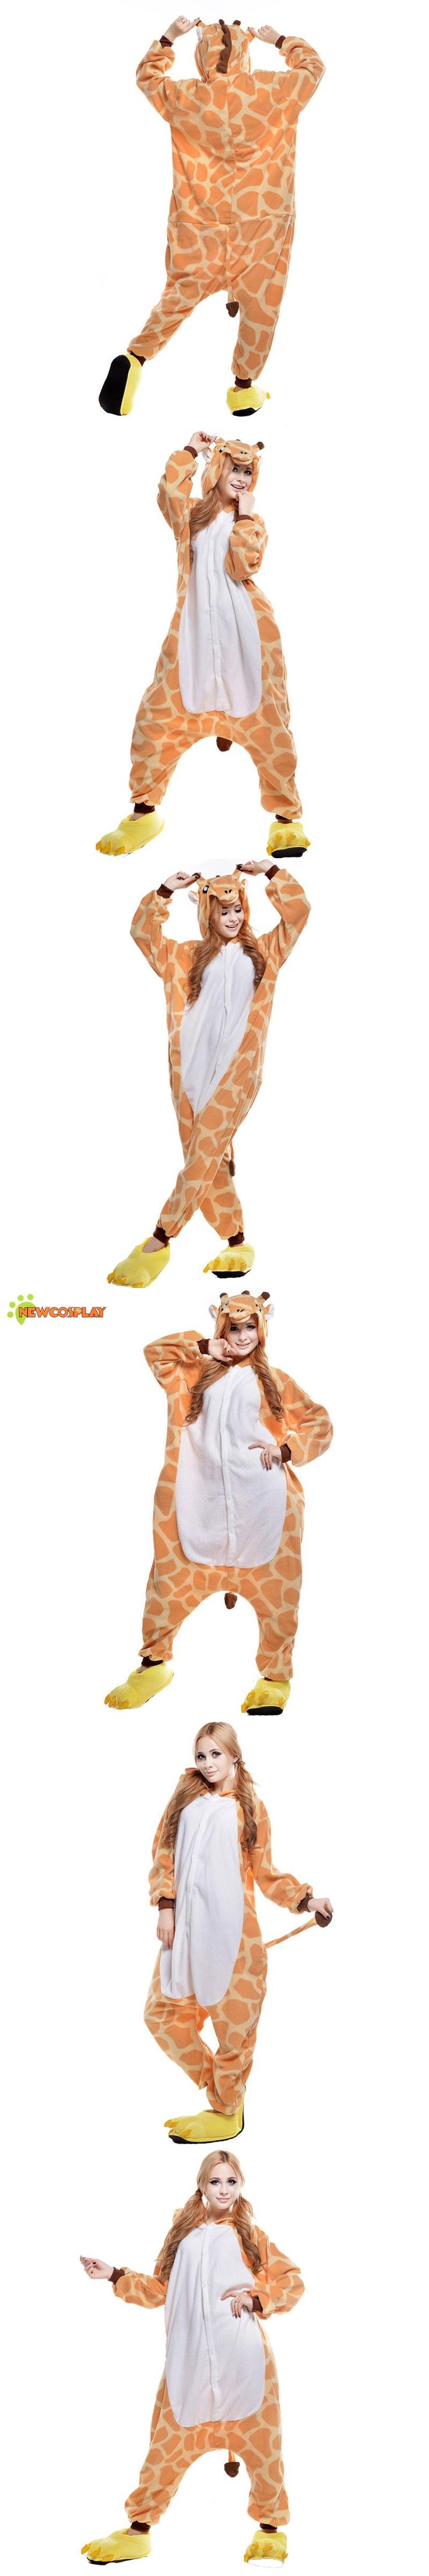 Newcosplay Anime Cosplay Costume Cartoon Giraffe Onesies Pajamas Cute Sleepwear Jumpsuit 2017 Unisex Cosplay Clothing